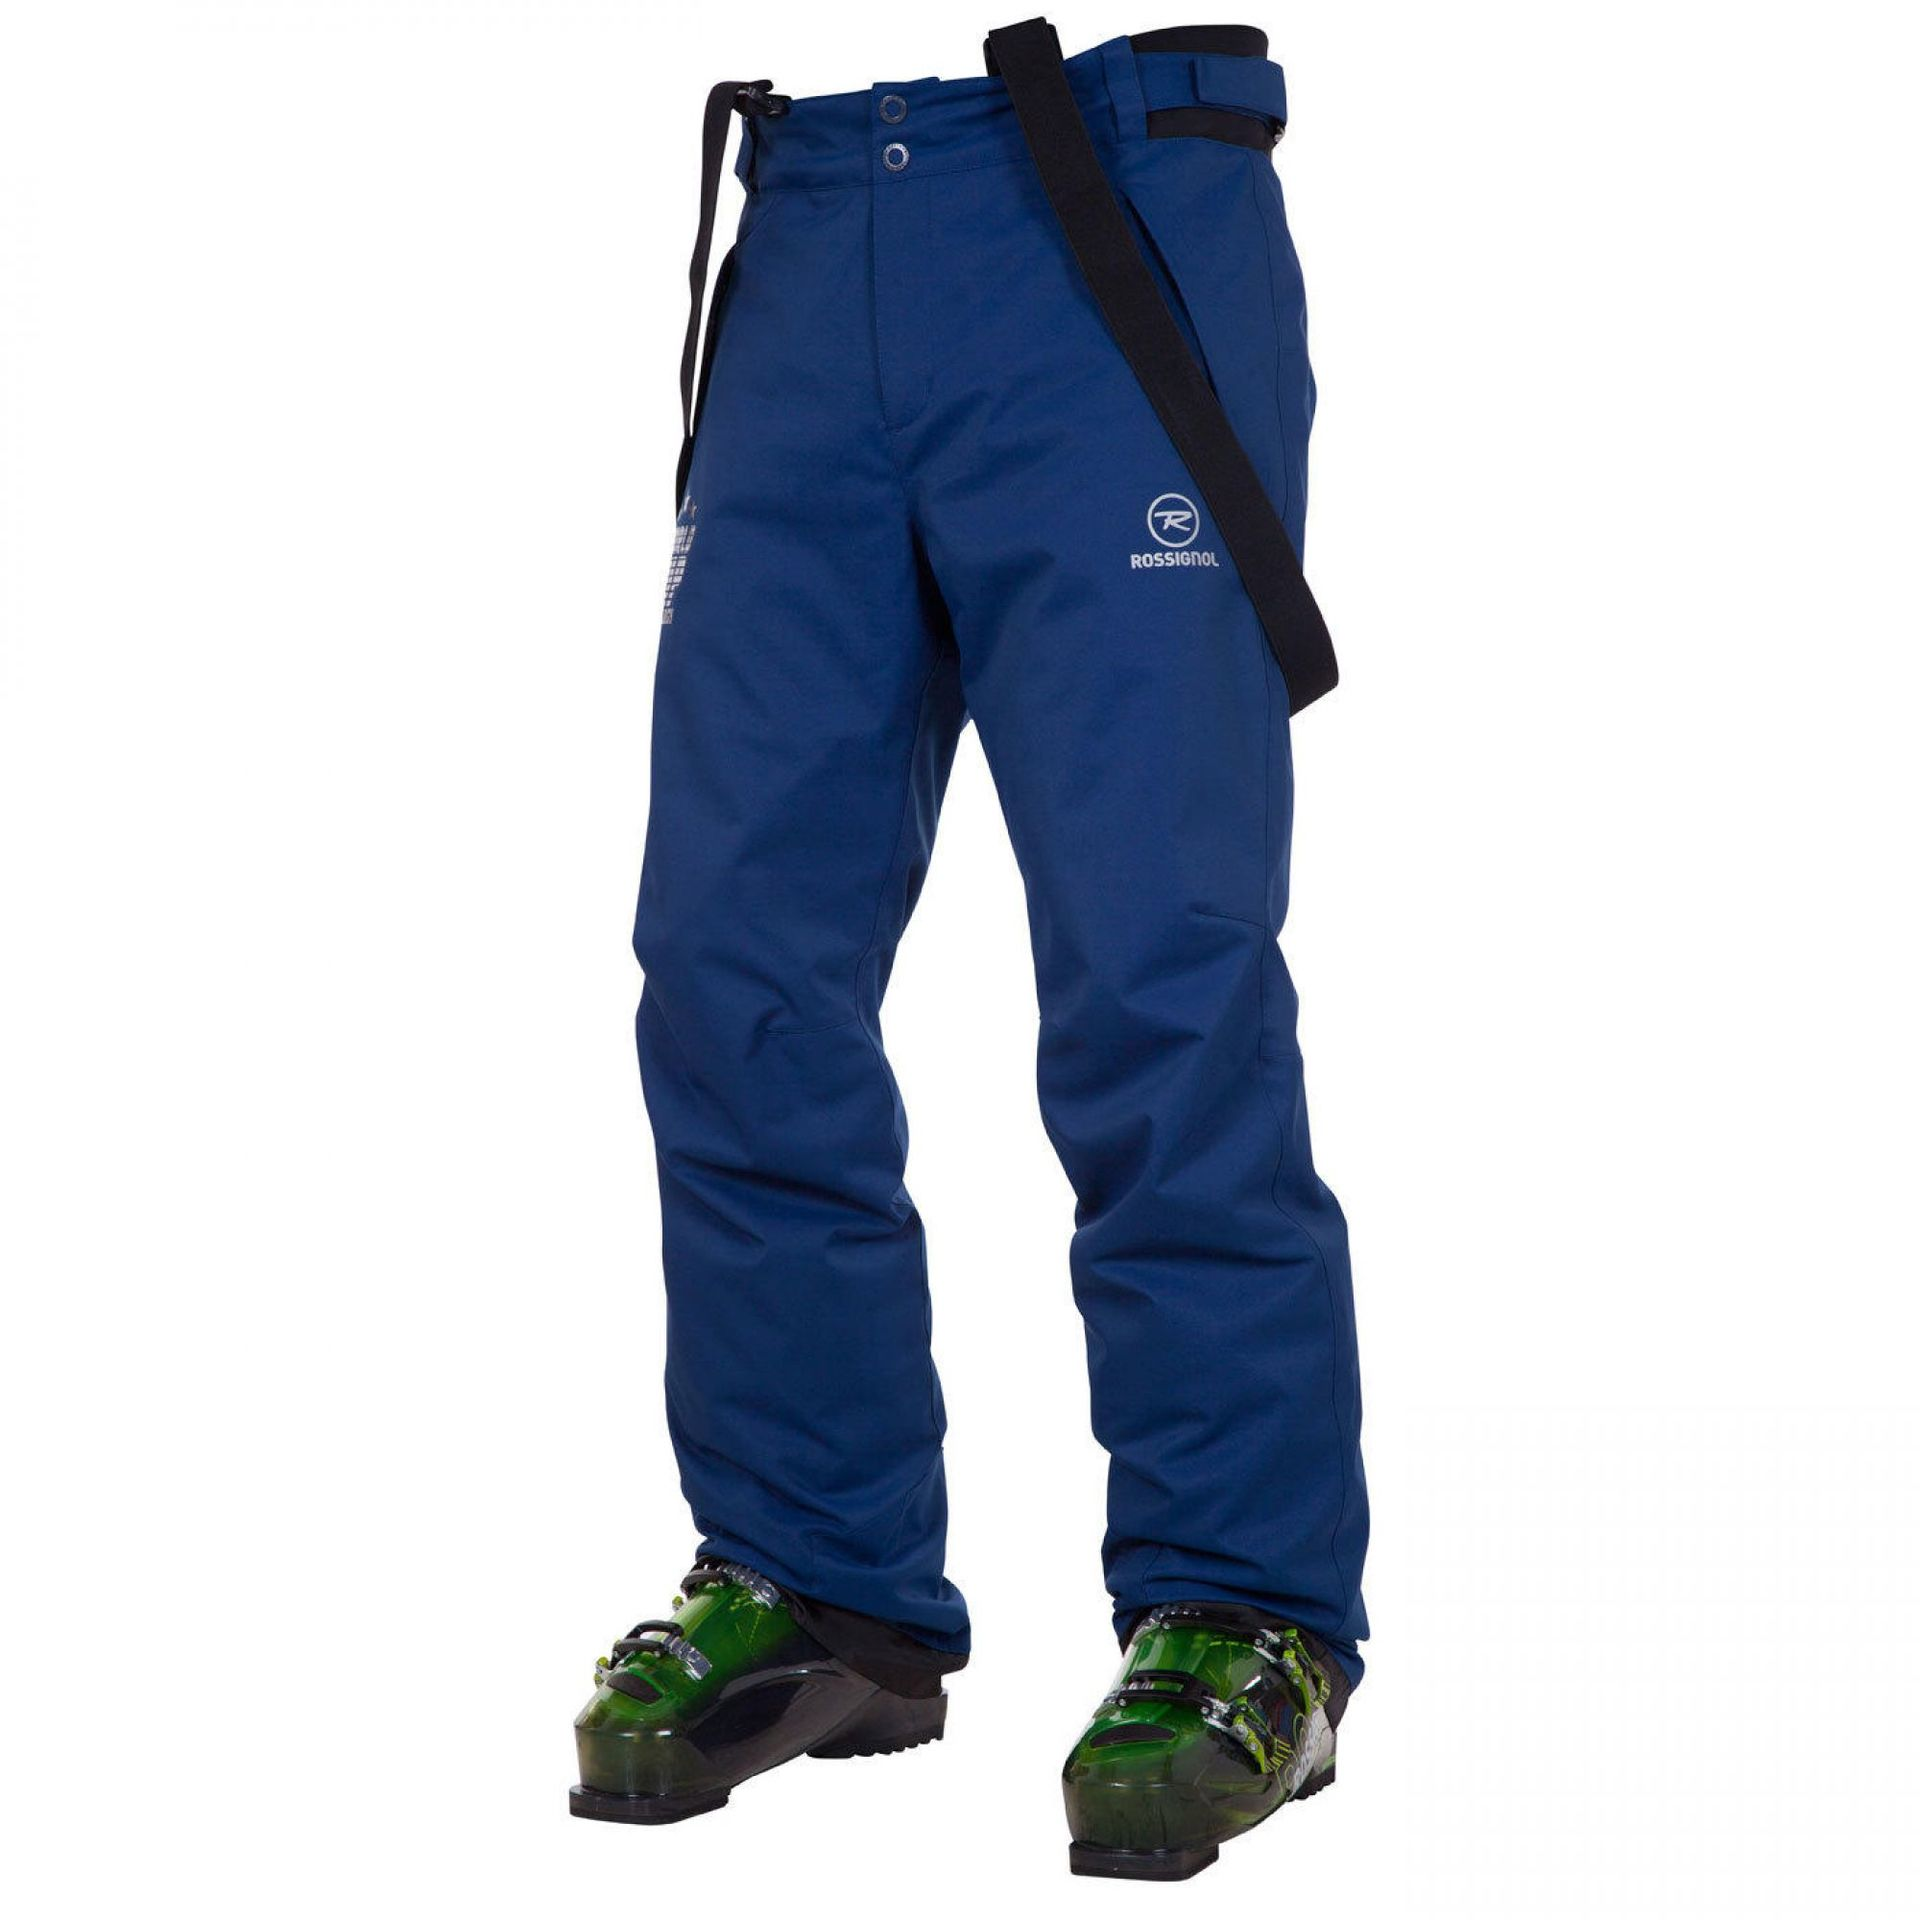 SPODNIE ROSSIGNOL ELITE PANT MIDNIGHT